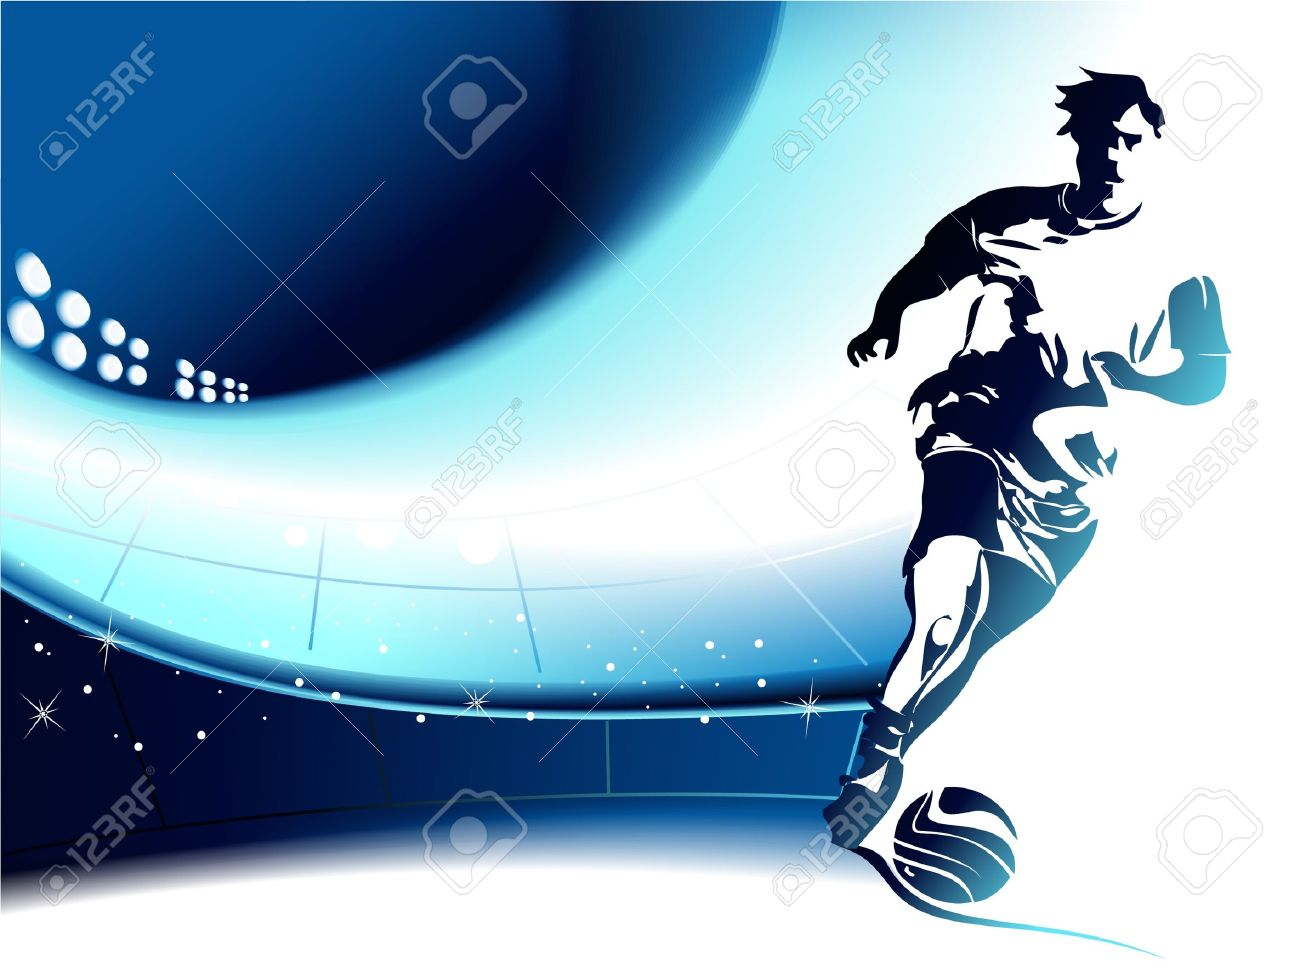 Football background with player - 14180338